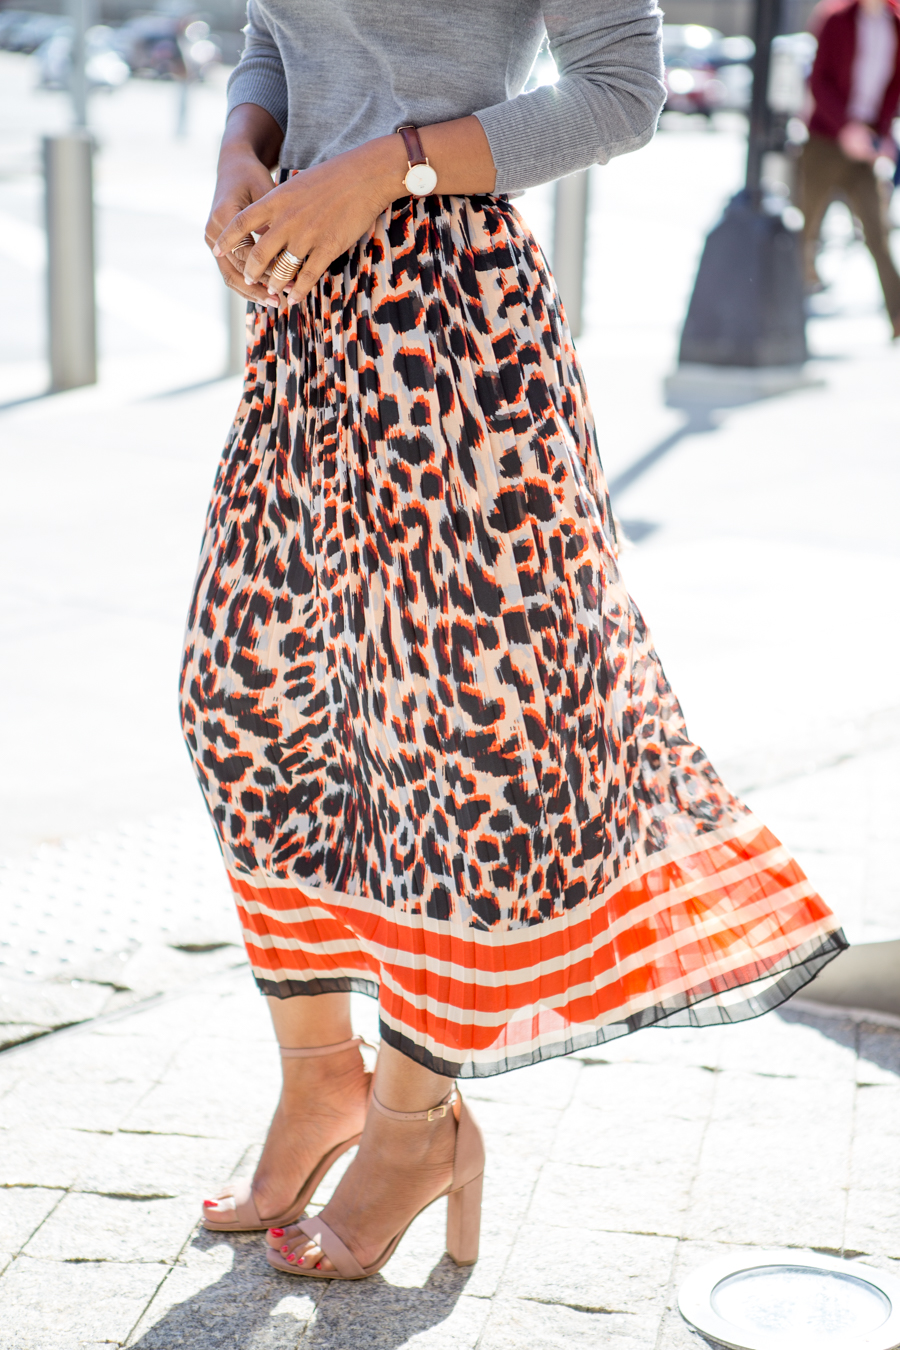 fall fashion, wardrobe essential, fall classics, banana republic, petite fashion, pleated midi skirt, faux fur, block heel, fall lookbook, petite style, office style, work style, corporate chic, colorful, neutrals, new york fashion week, fall fashion trends